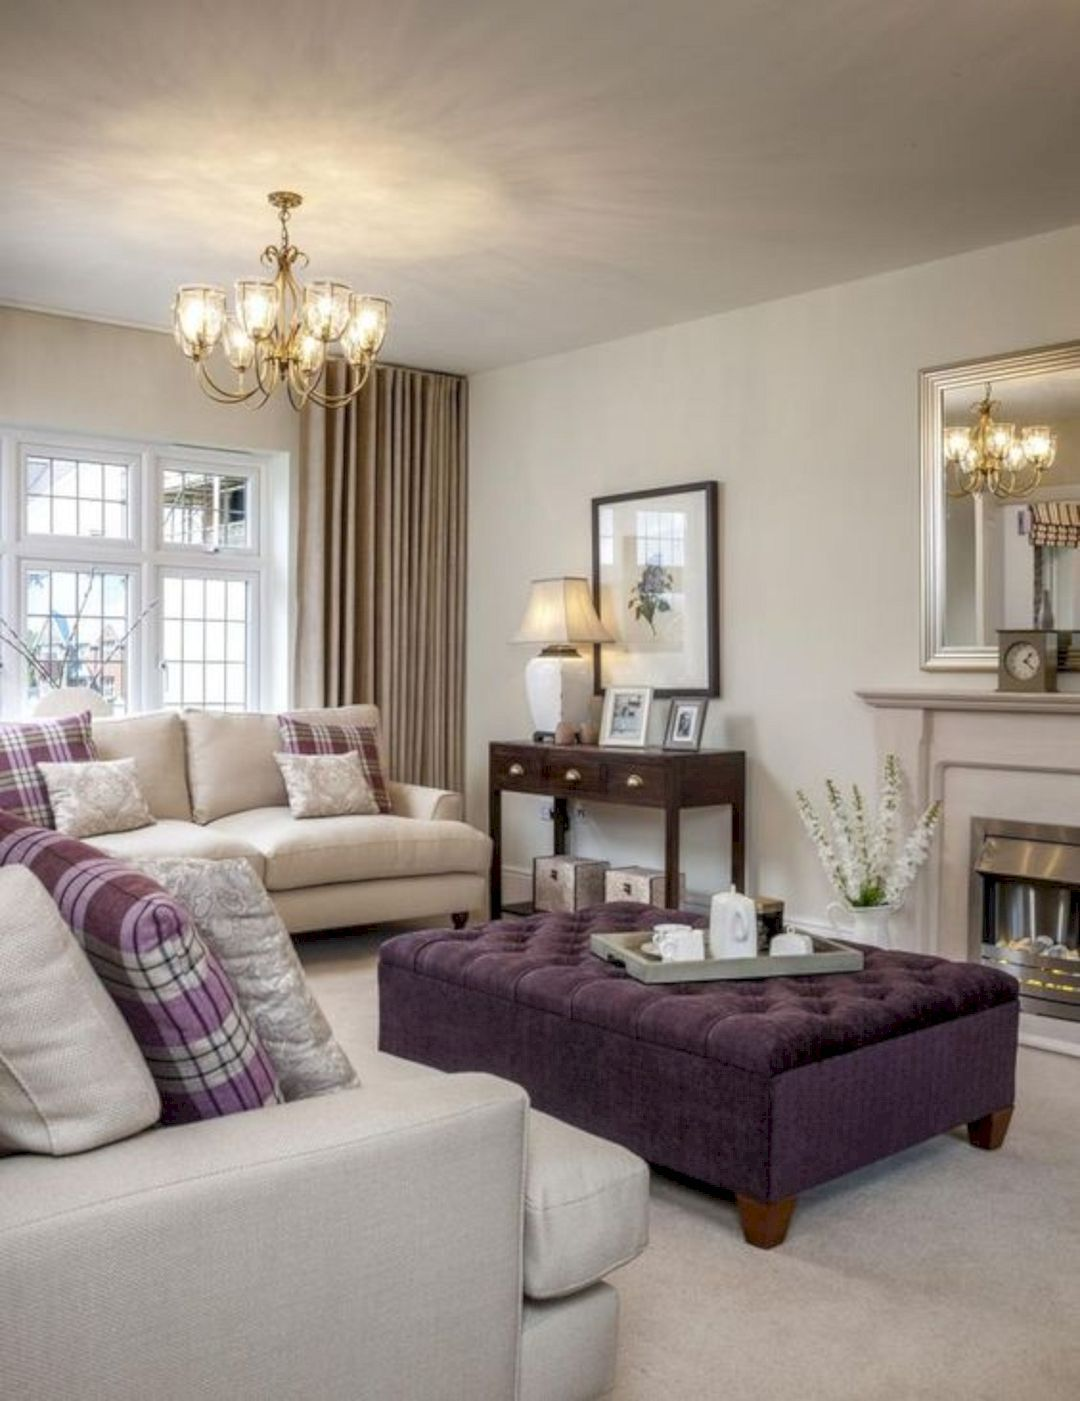 How To Decorate A Small Living Room Purple Living Room Feminine Living Room Interior